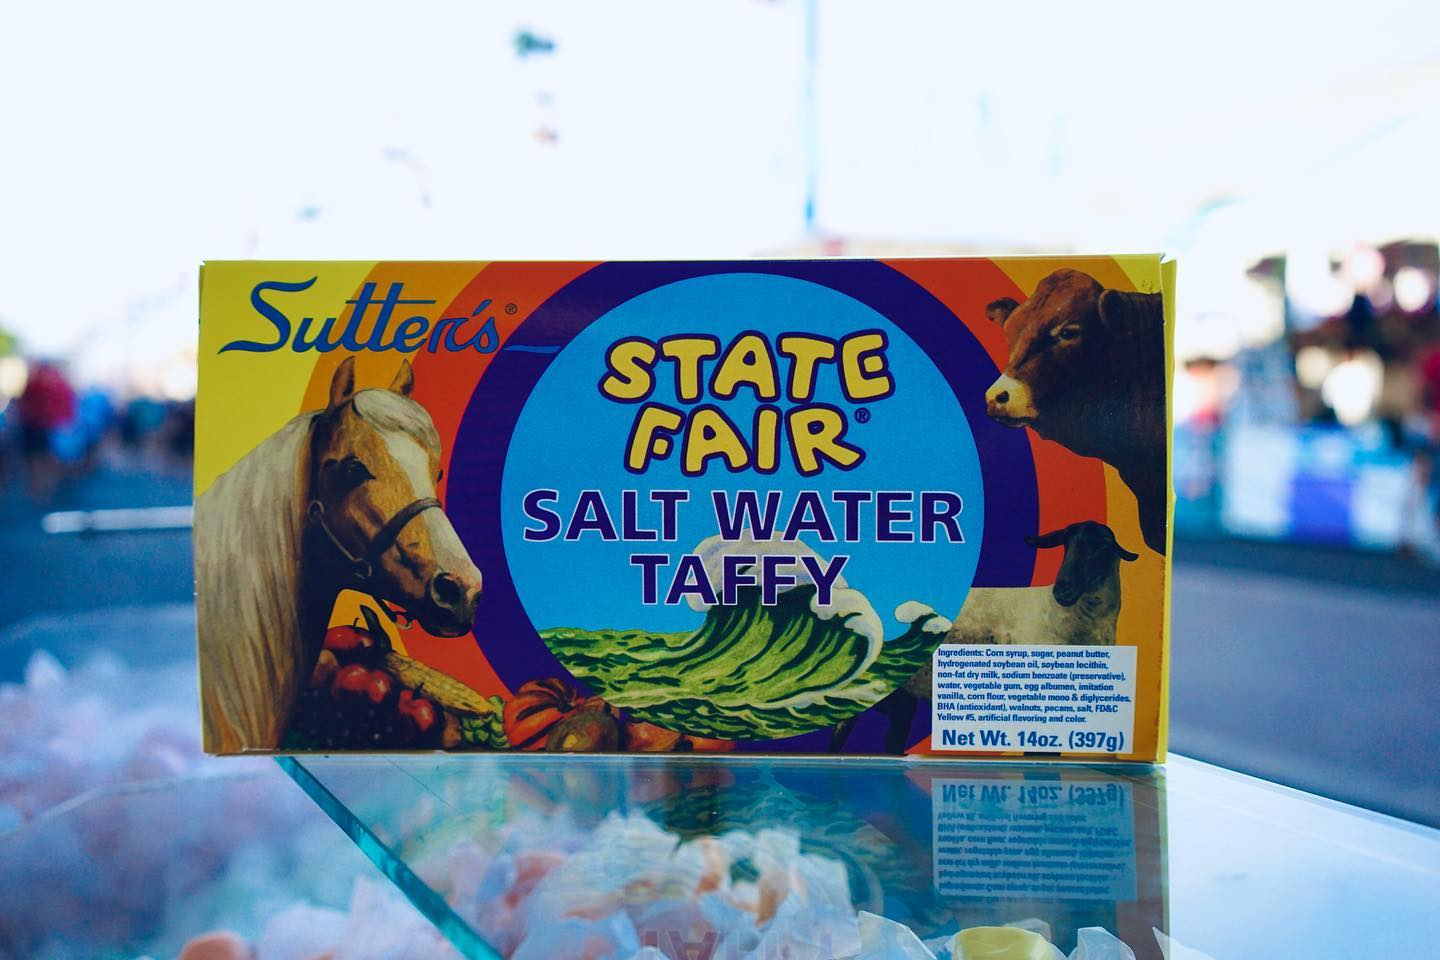 Sutter's State Fair Taffy